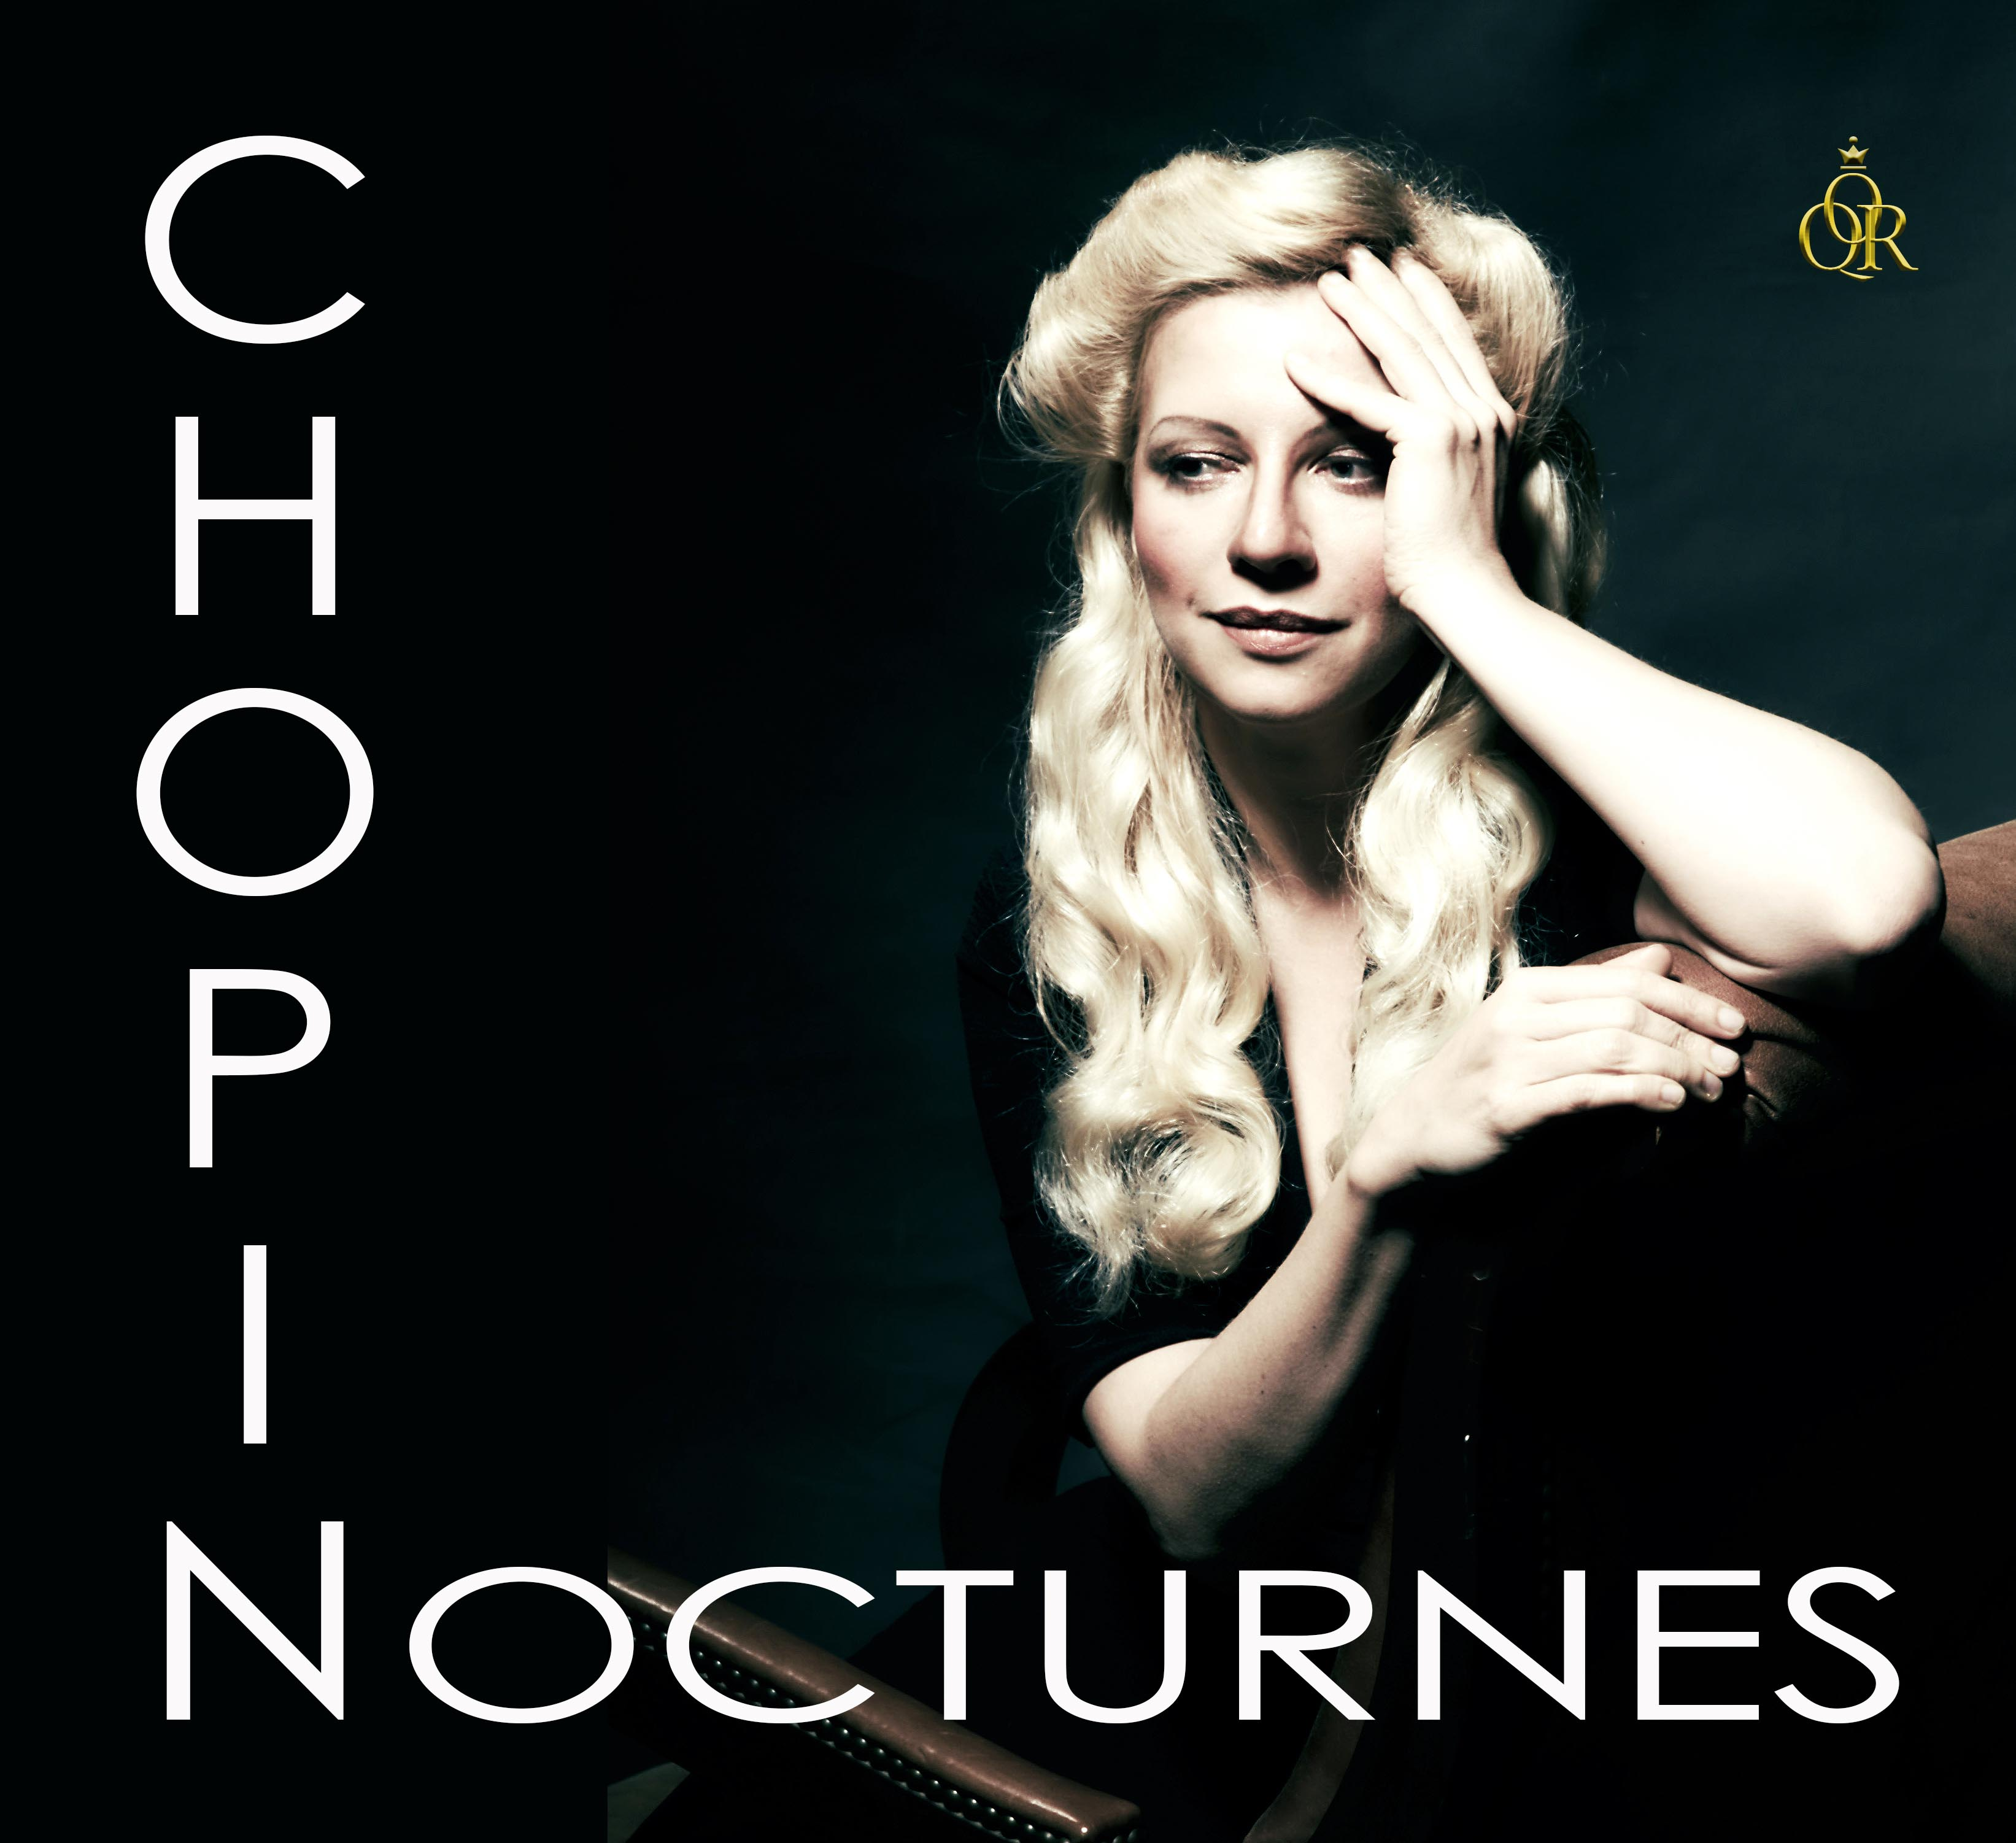 Chopin Nocturnes now available on Idagio